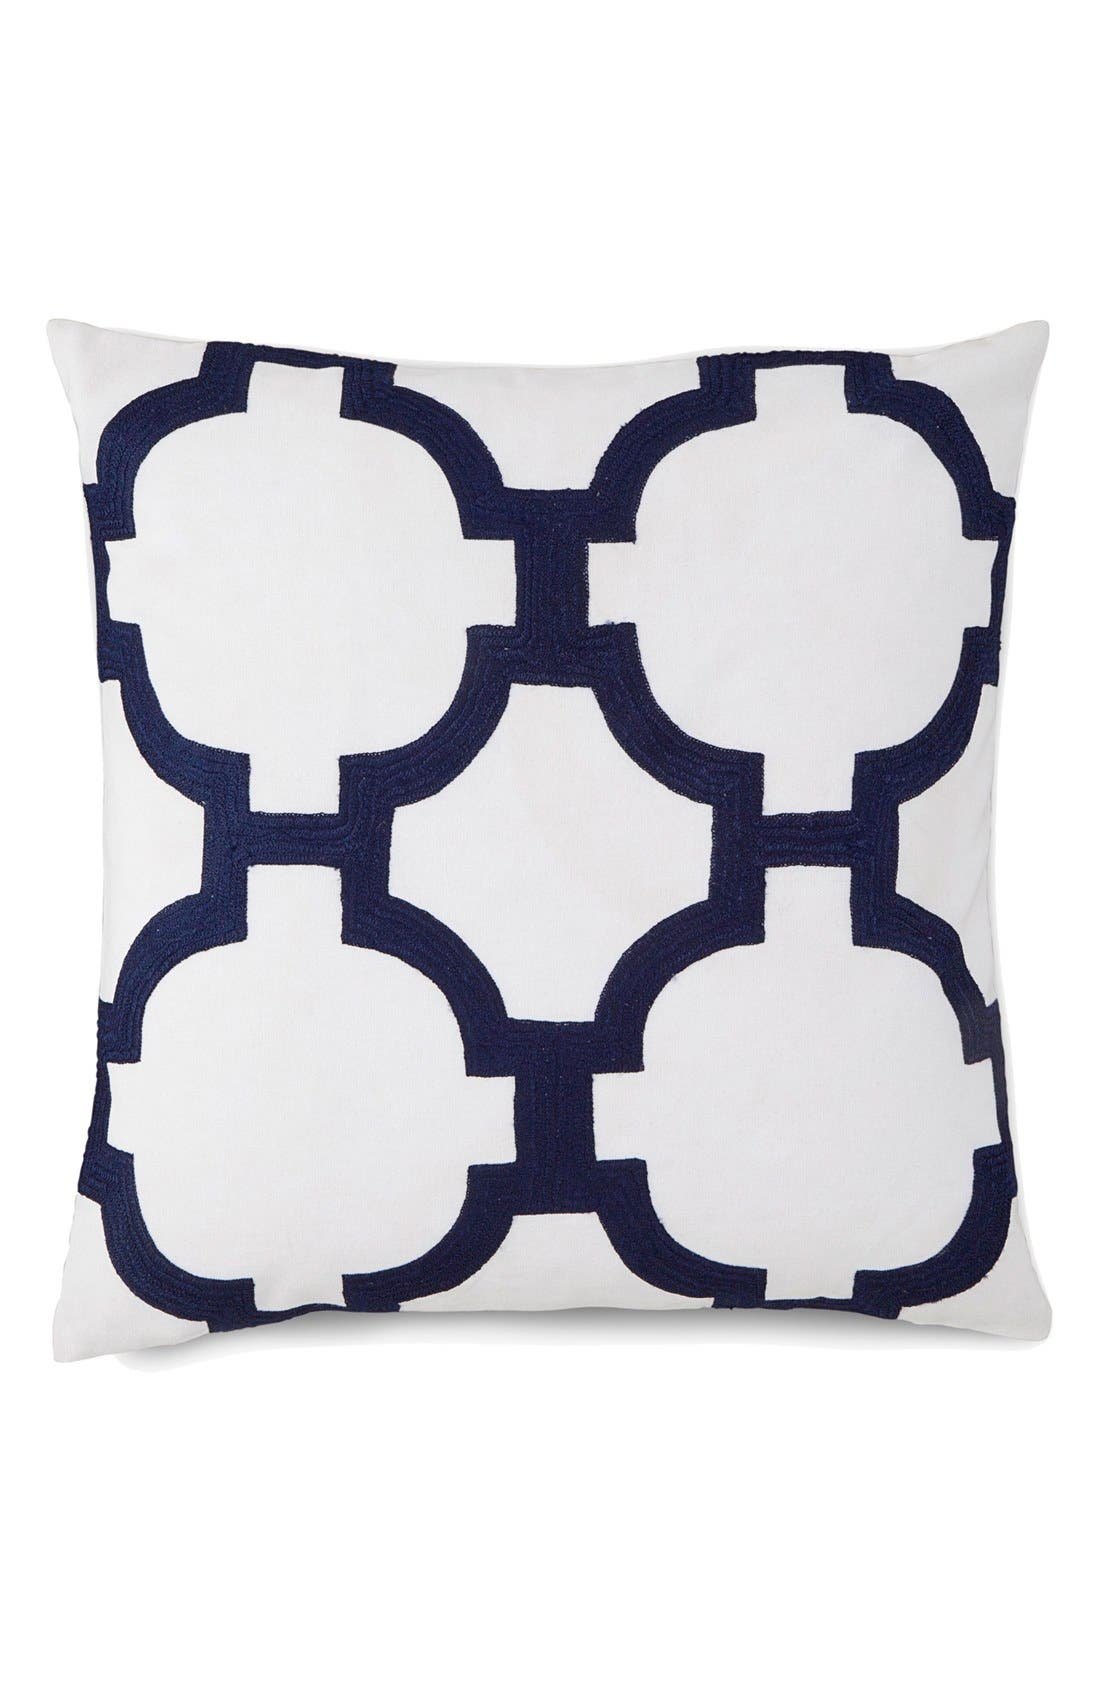 JILL ROSENWALD 'Embroidered Links' Pillow